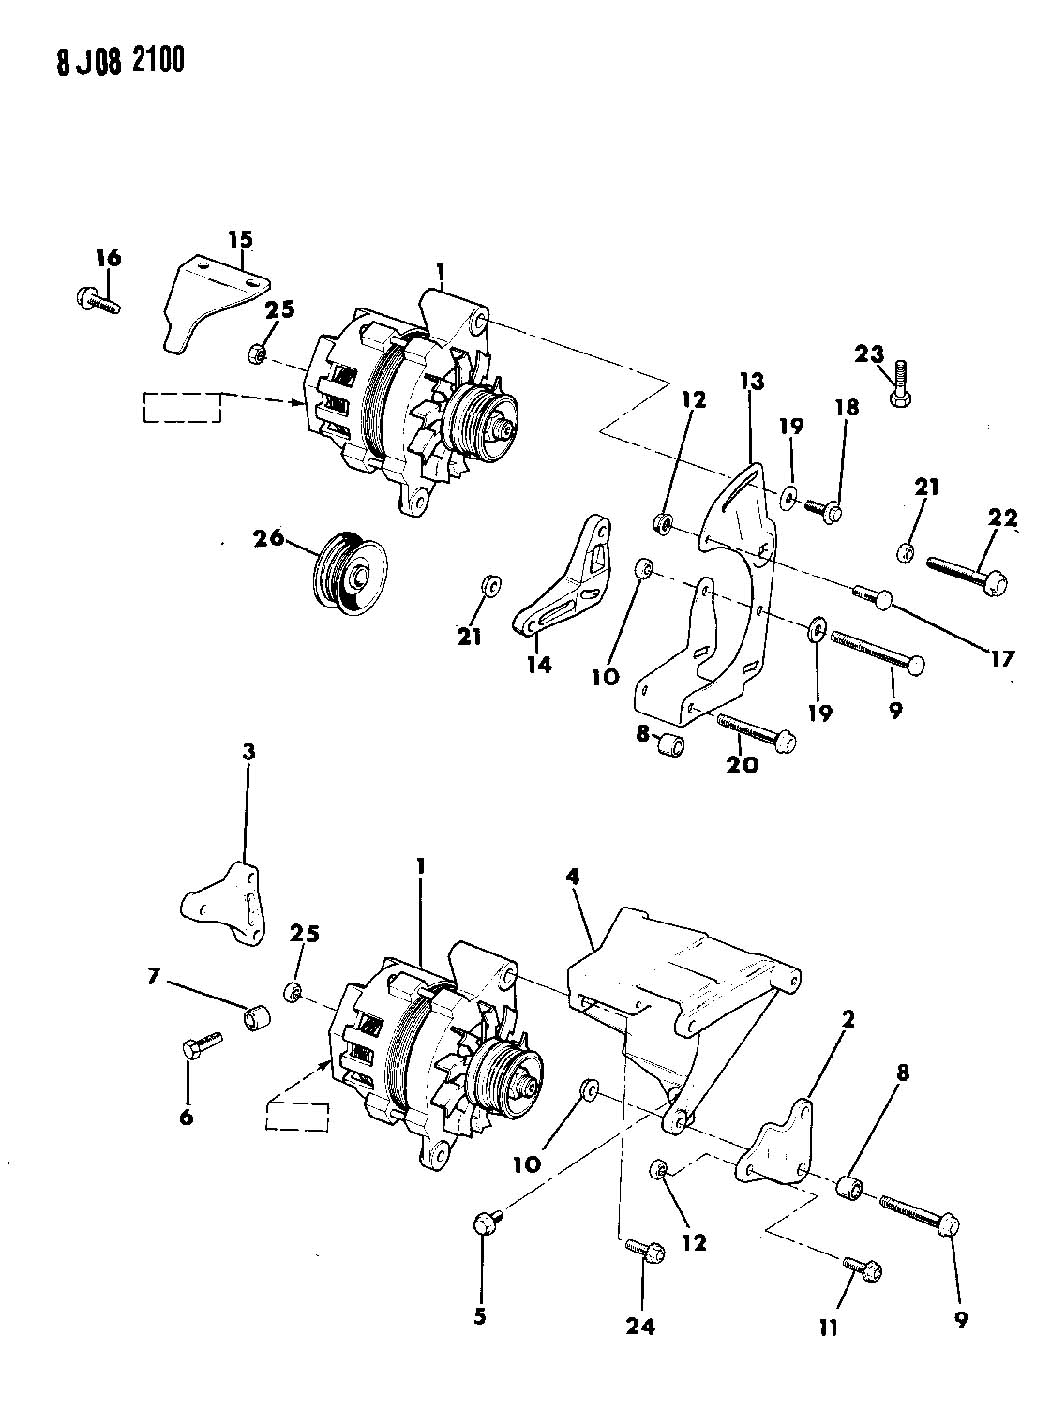 1990 Jeep Cherokee ALTERNATOR AND MOUNTING 2.5L ENGINE